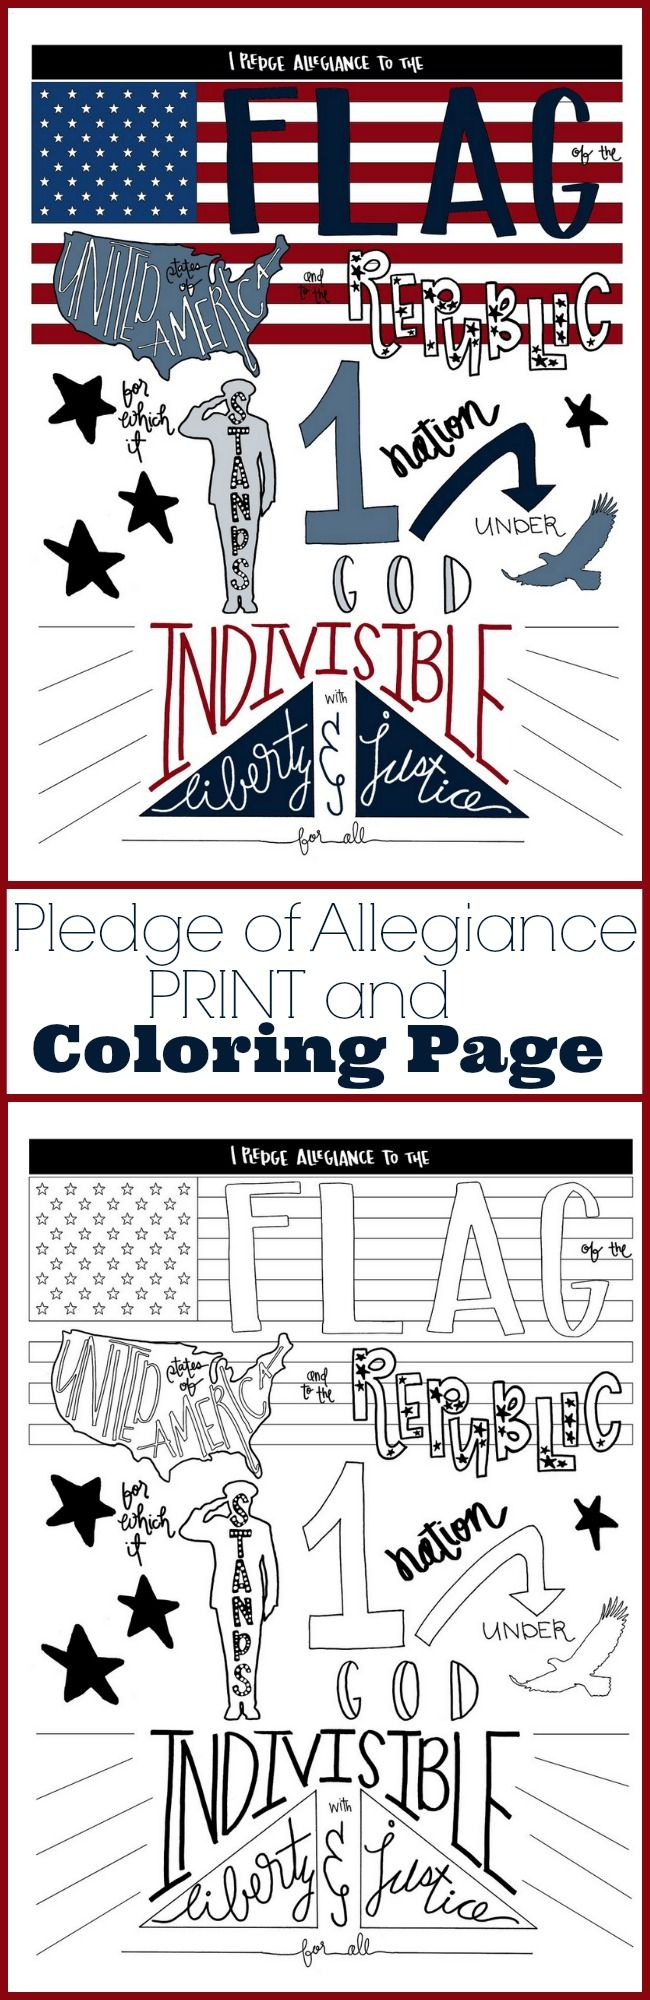 Free coloring pages for 4th of july for kids - Pledge Of Allegiance Coloring Page Printable